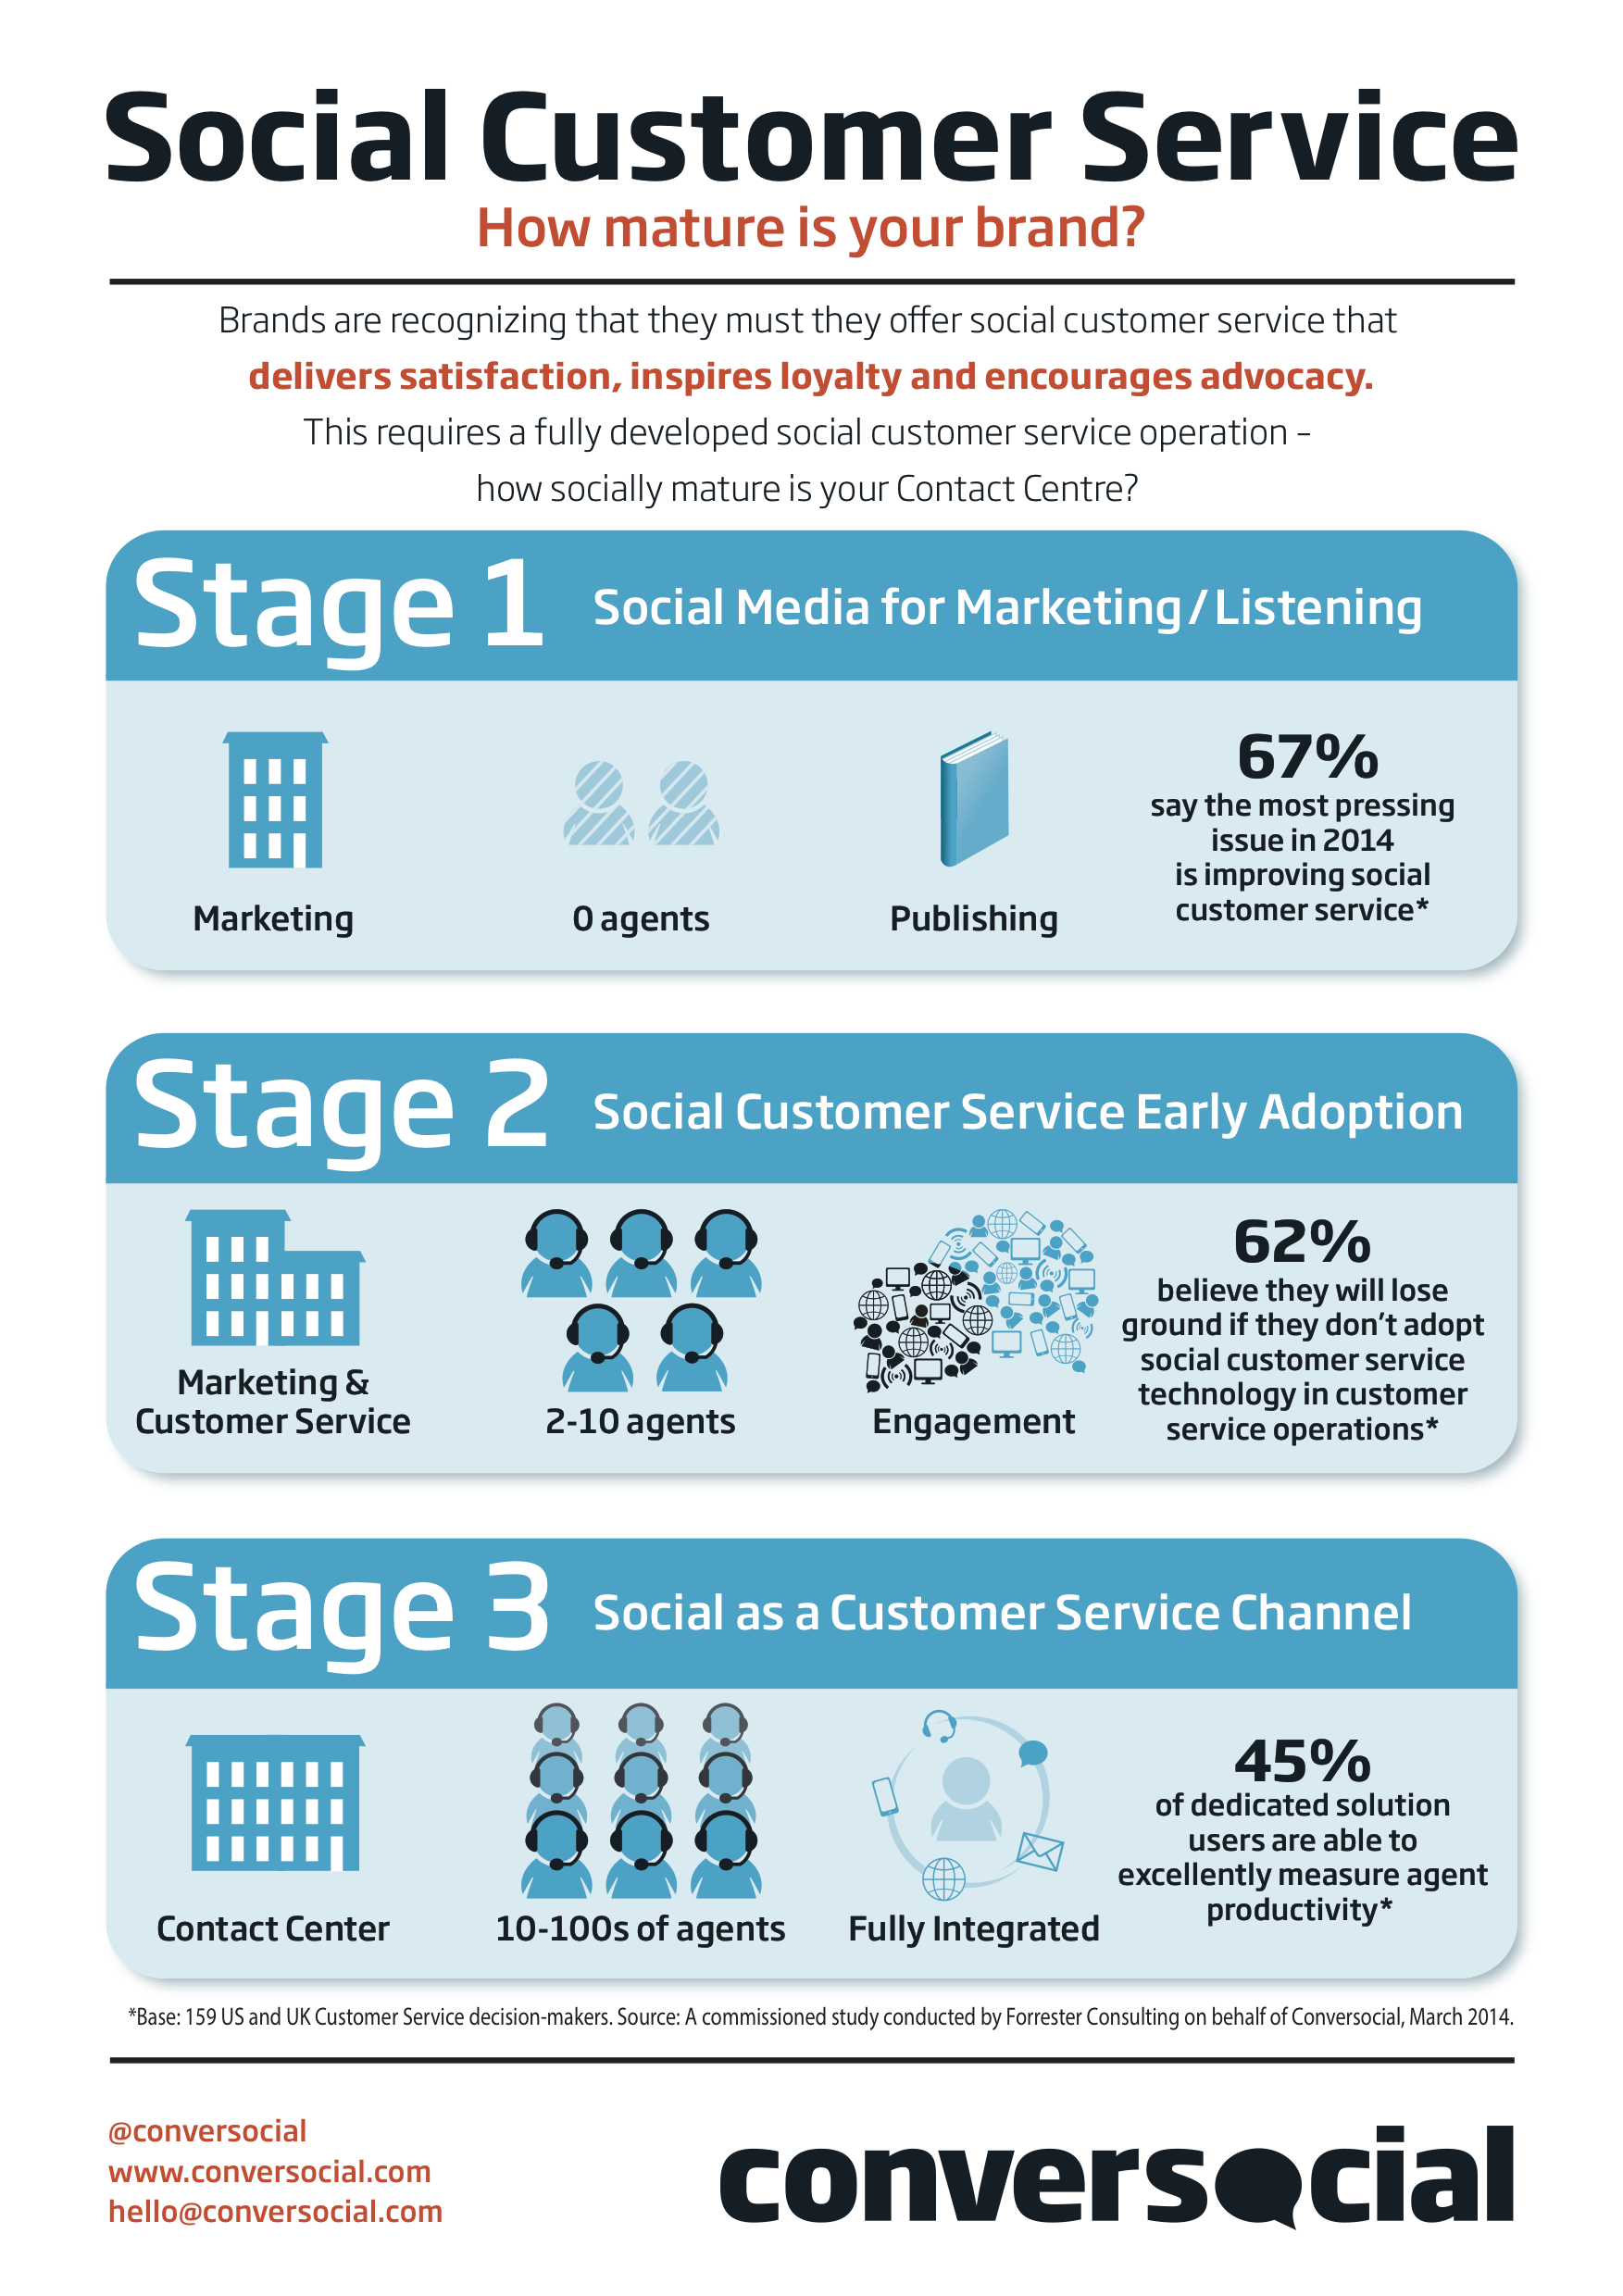 Customers Still Prefer The Telephone, Email And Even FAQs Over Social Media For Support [STUDY]